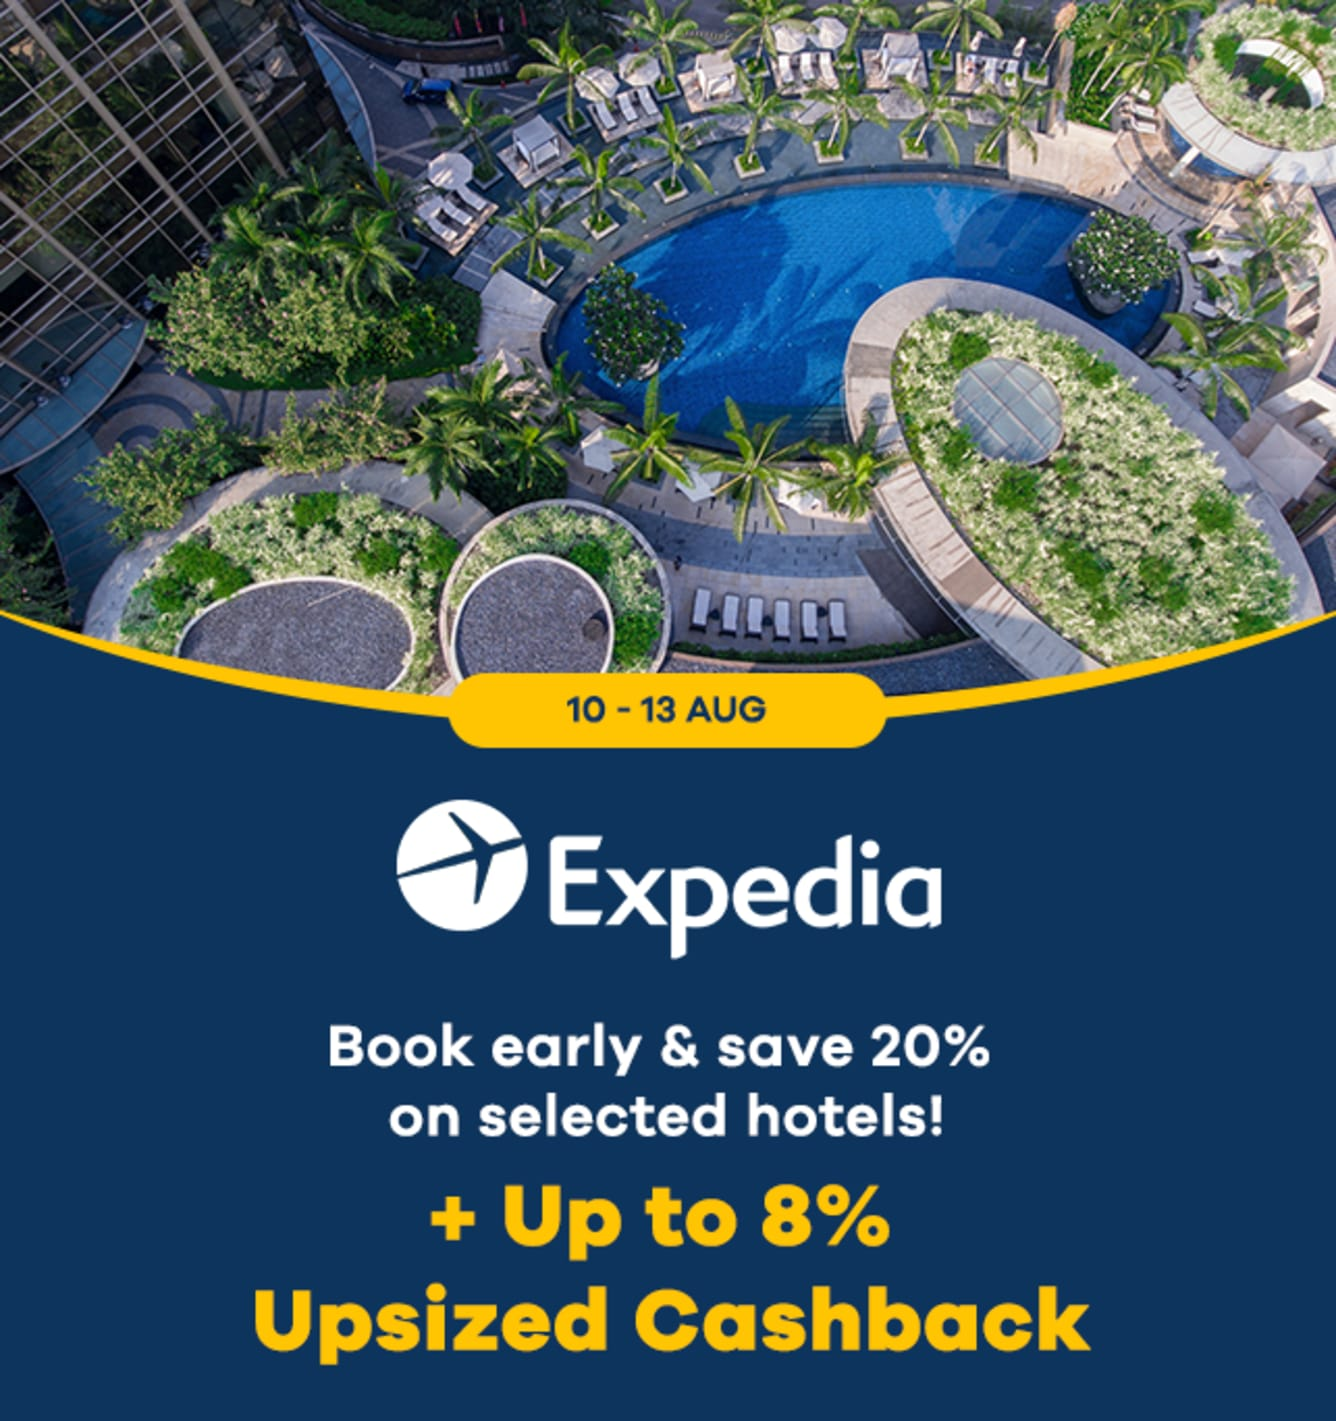 Expedia: Up to 7.5% Upsized Cashback